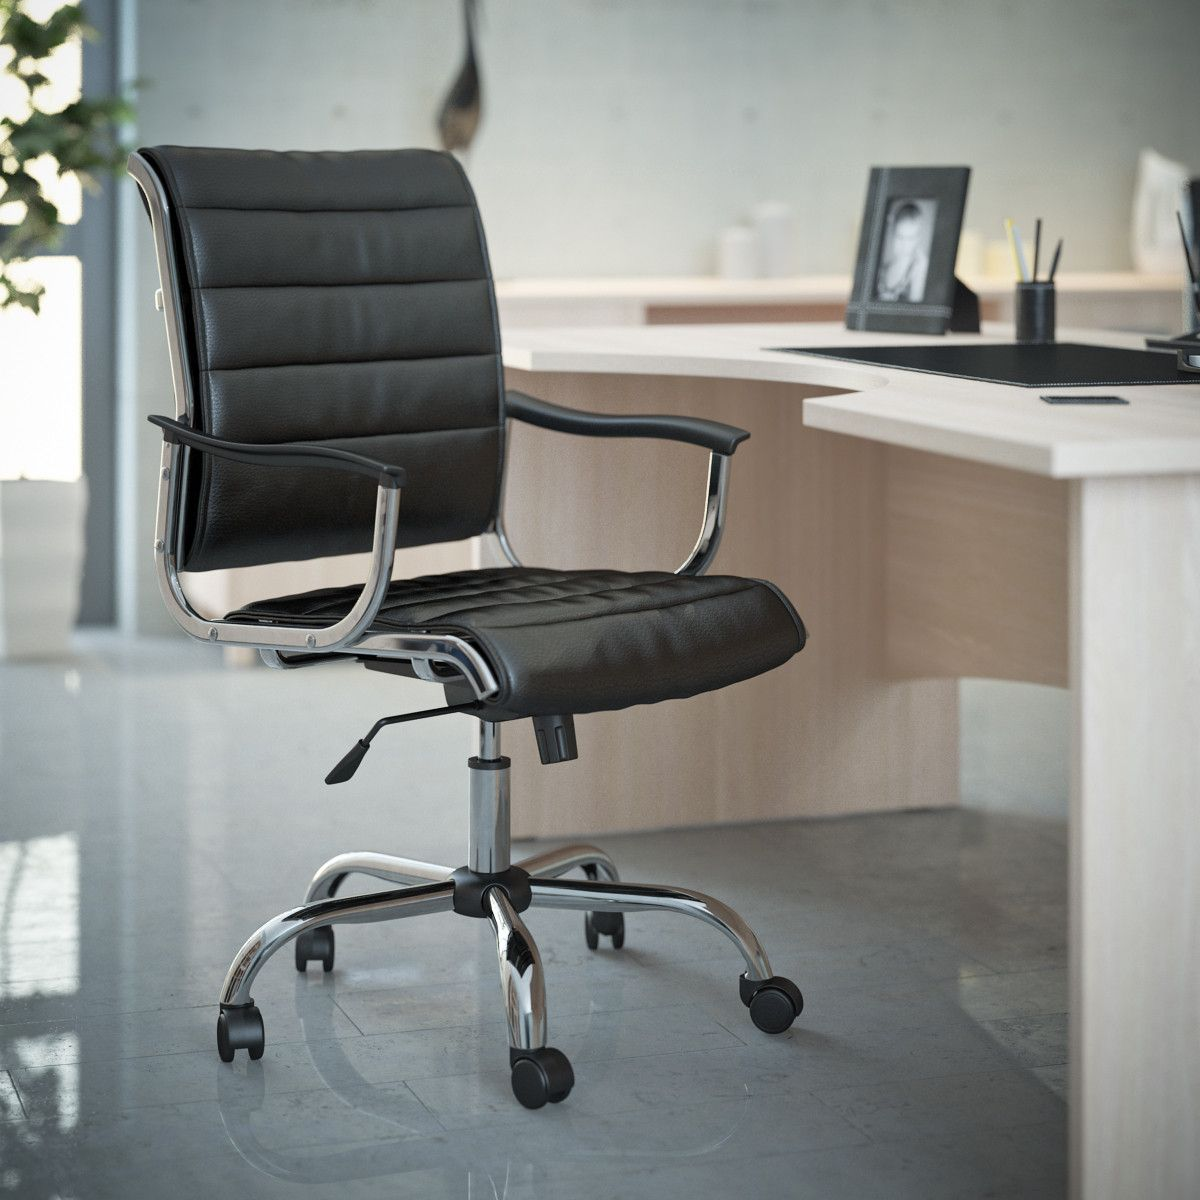 Office chair 994axns 3d model. 3ds max, Vray 3d max